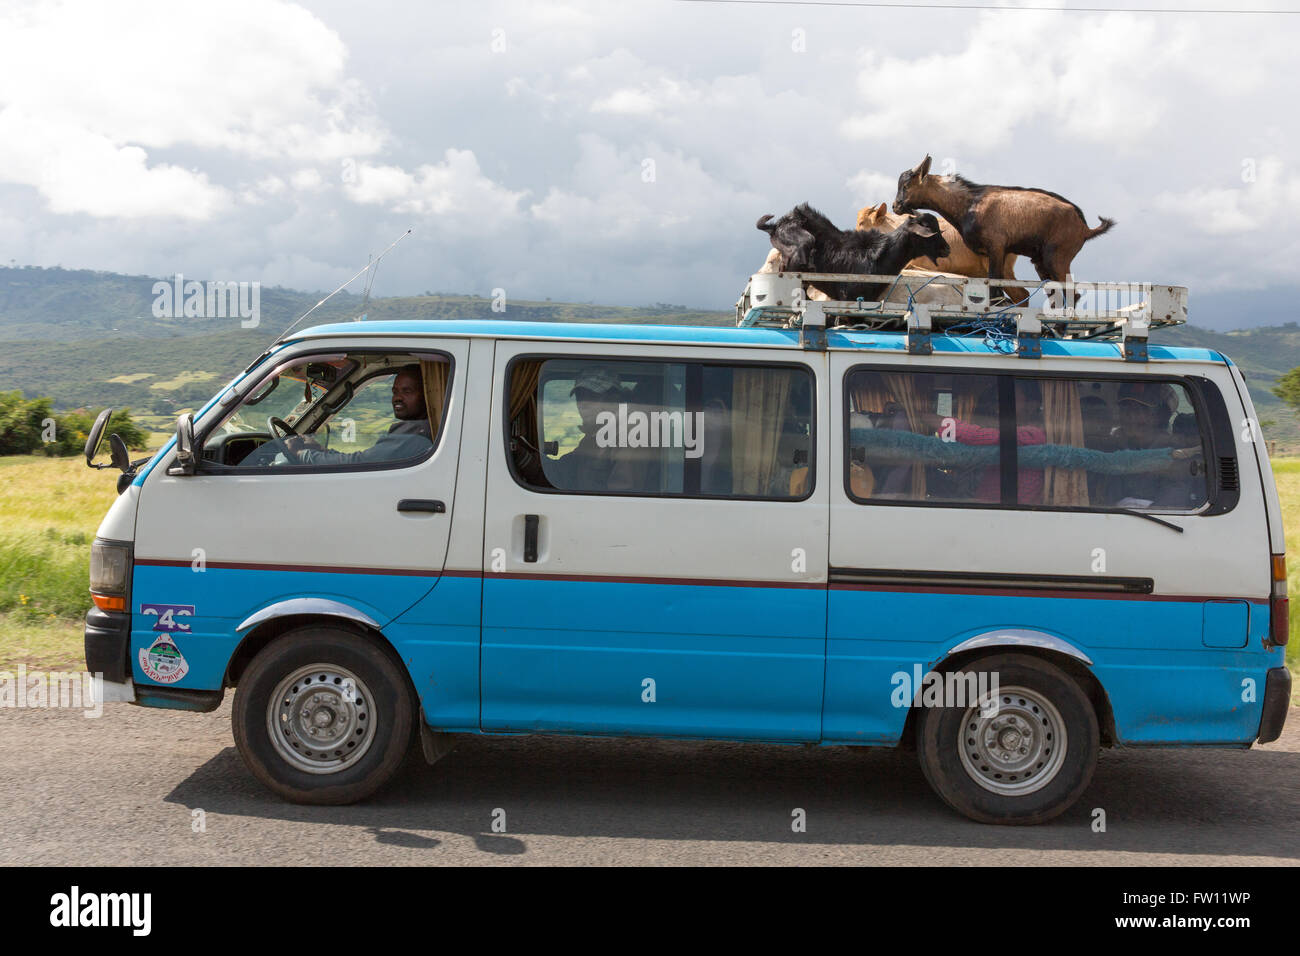 West Shewa, Oromia, Ethiopia, October 2013 A local bus service carrying goats on the roof. - Stock Image